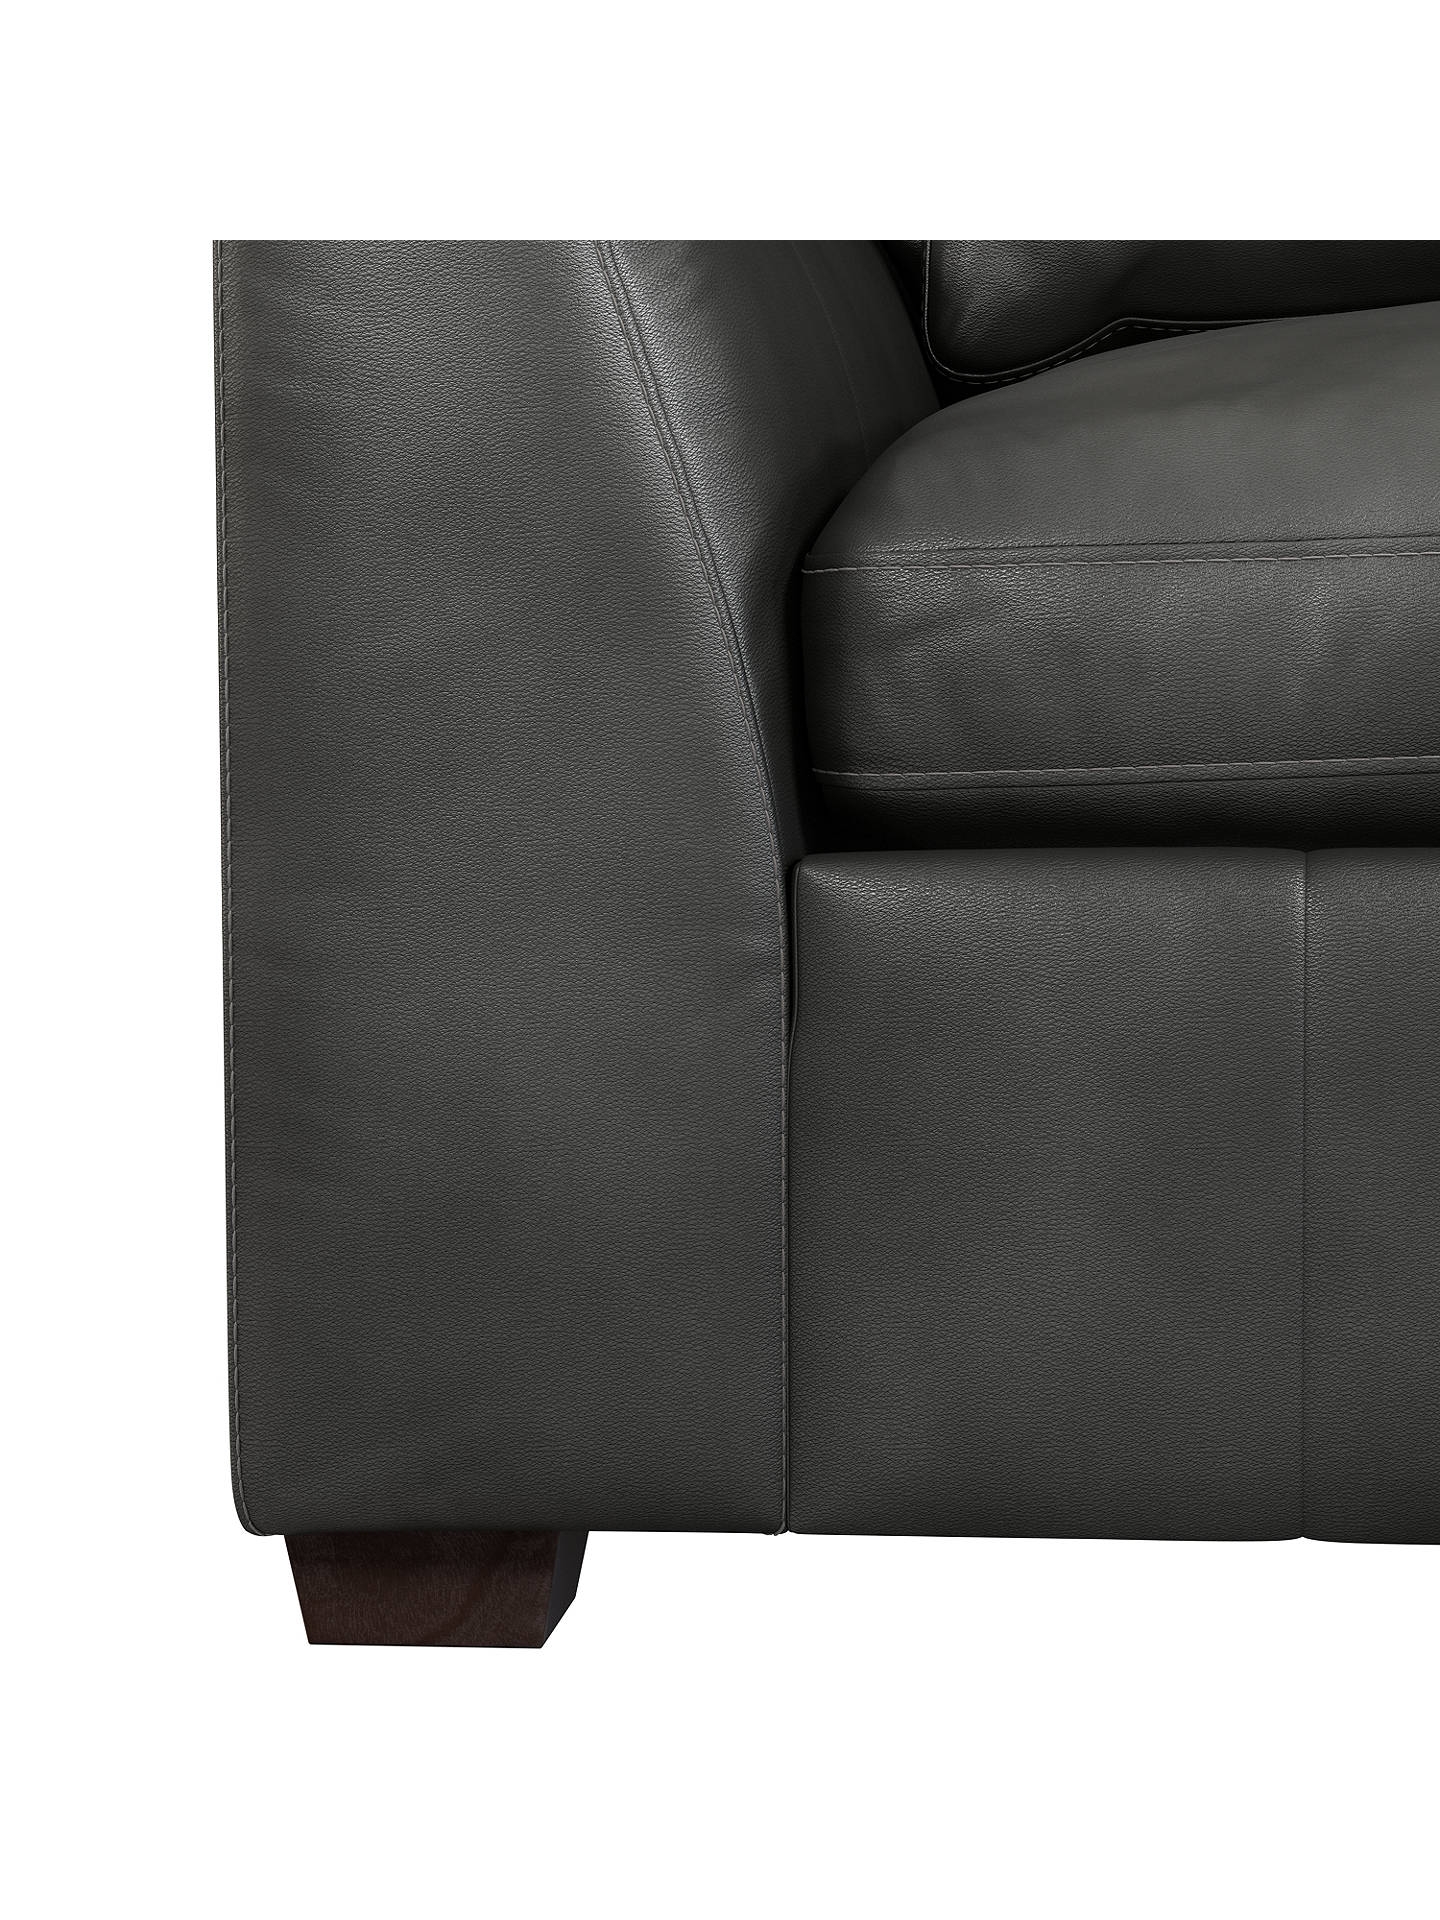 Buy John Lewis & Partners Tortona Leather Large 3 Seater Sofa, Winchester Anthracite Online at johnlewis.com